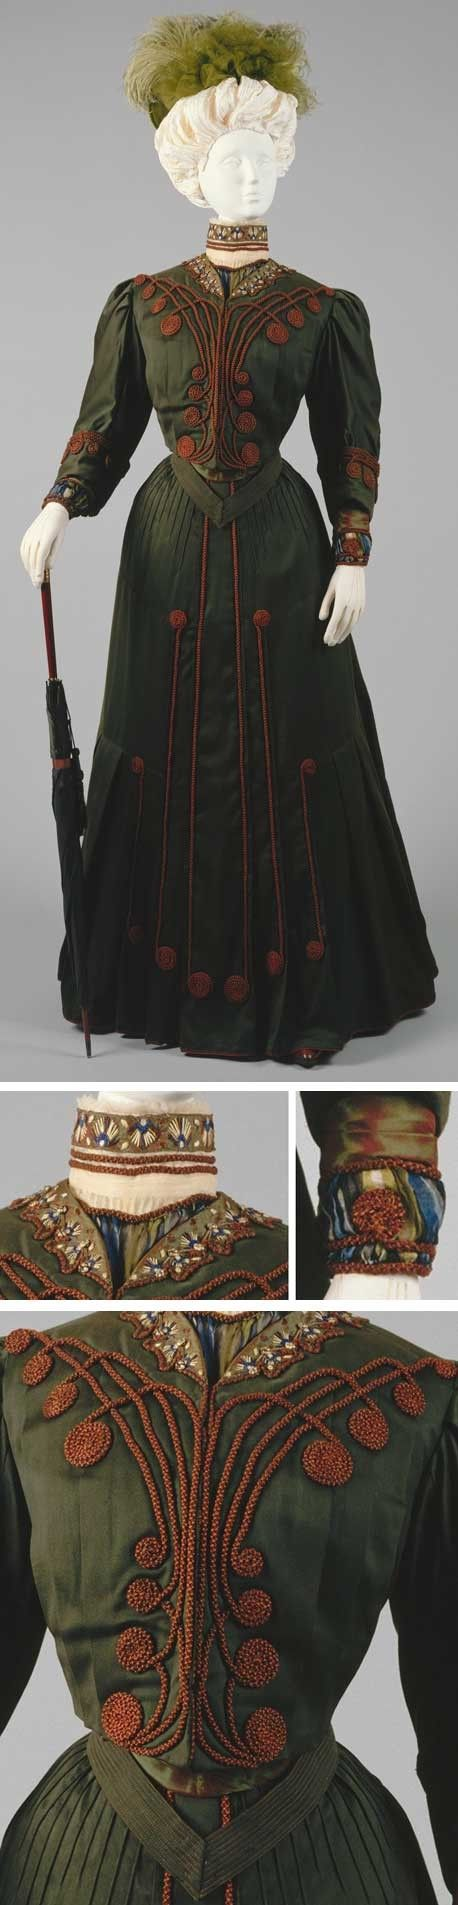 Ensemble, Gustave Beer, France, ca. 1904-05. Wool and silk. Metropolitan Museum of Art